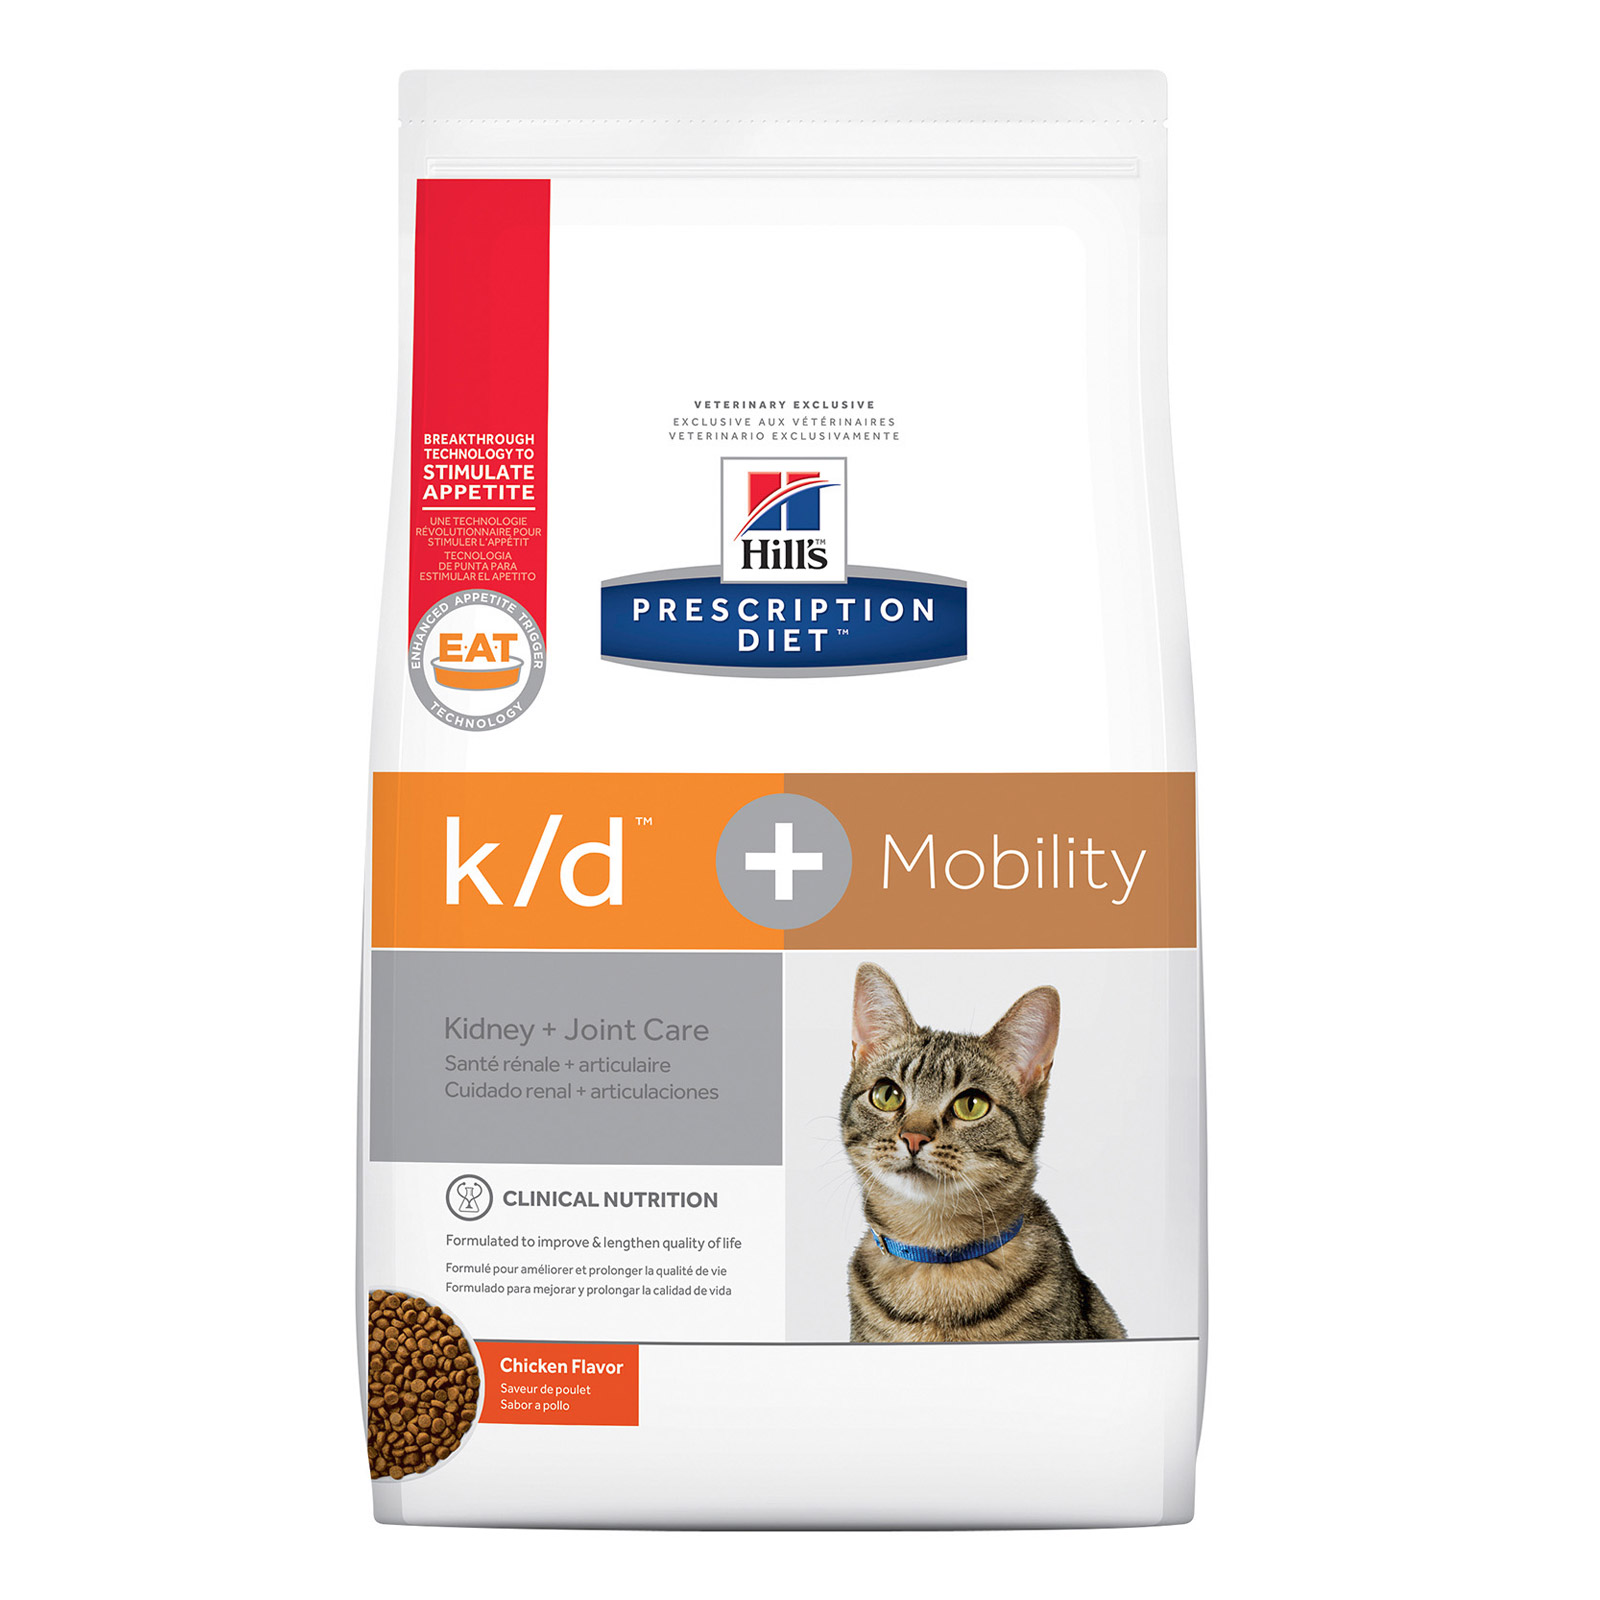 Hill's Prescription Diet k/d + Mobility Chicken Dry Cat Food